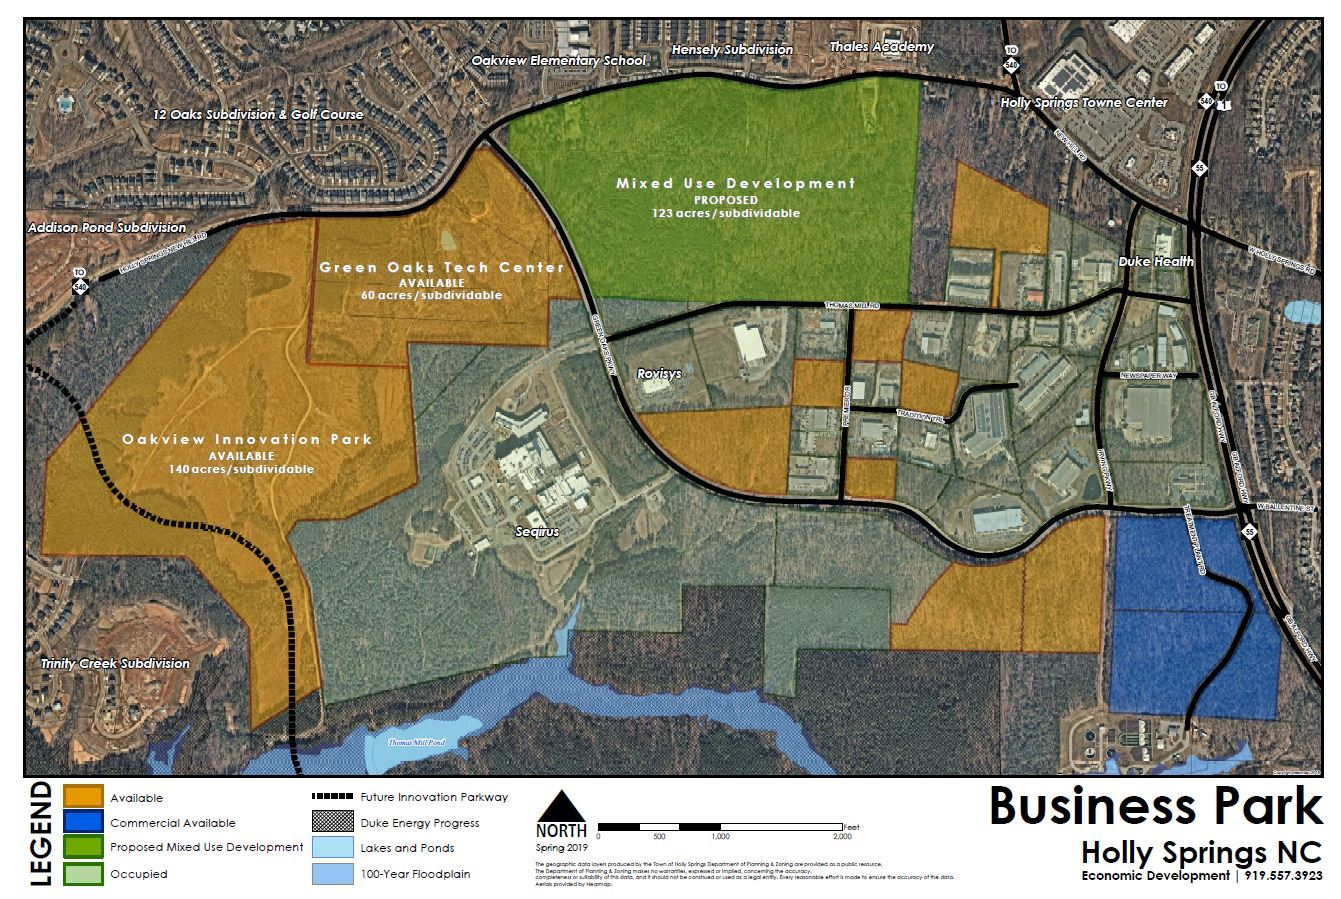 holly springs business park map showing all parcels and color coded to show available properties and